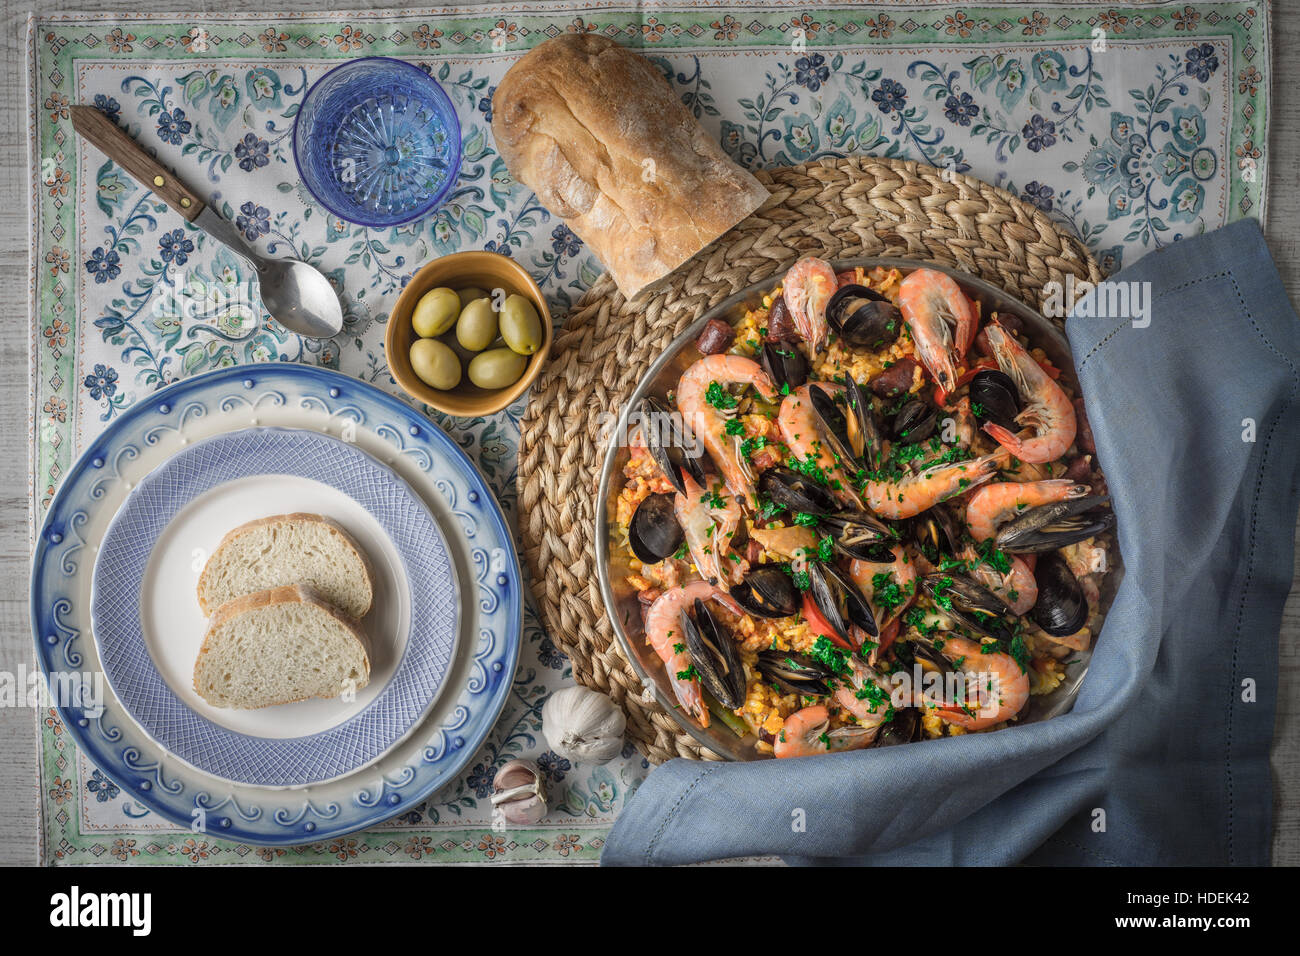 Paella on the metal plate on the beautiful napkin with tableware and bread top view - Stock Image